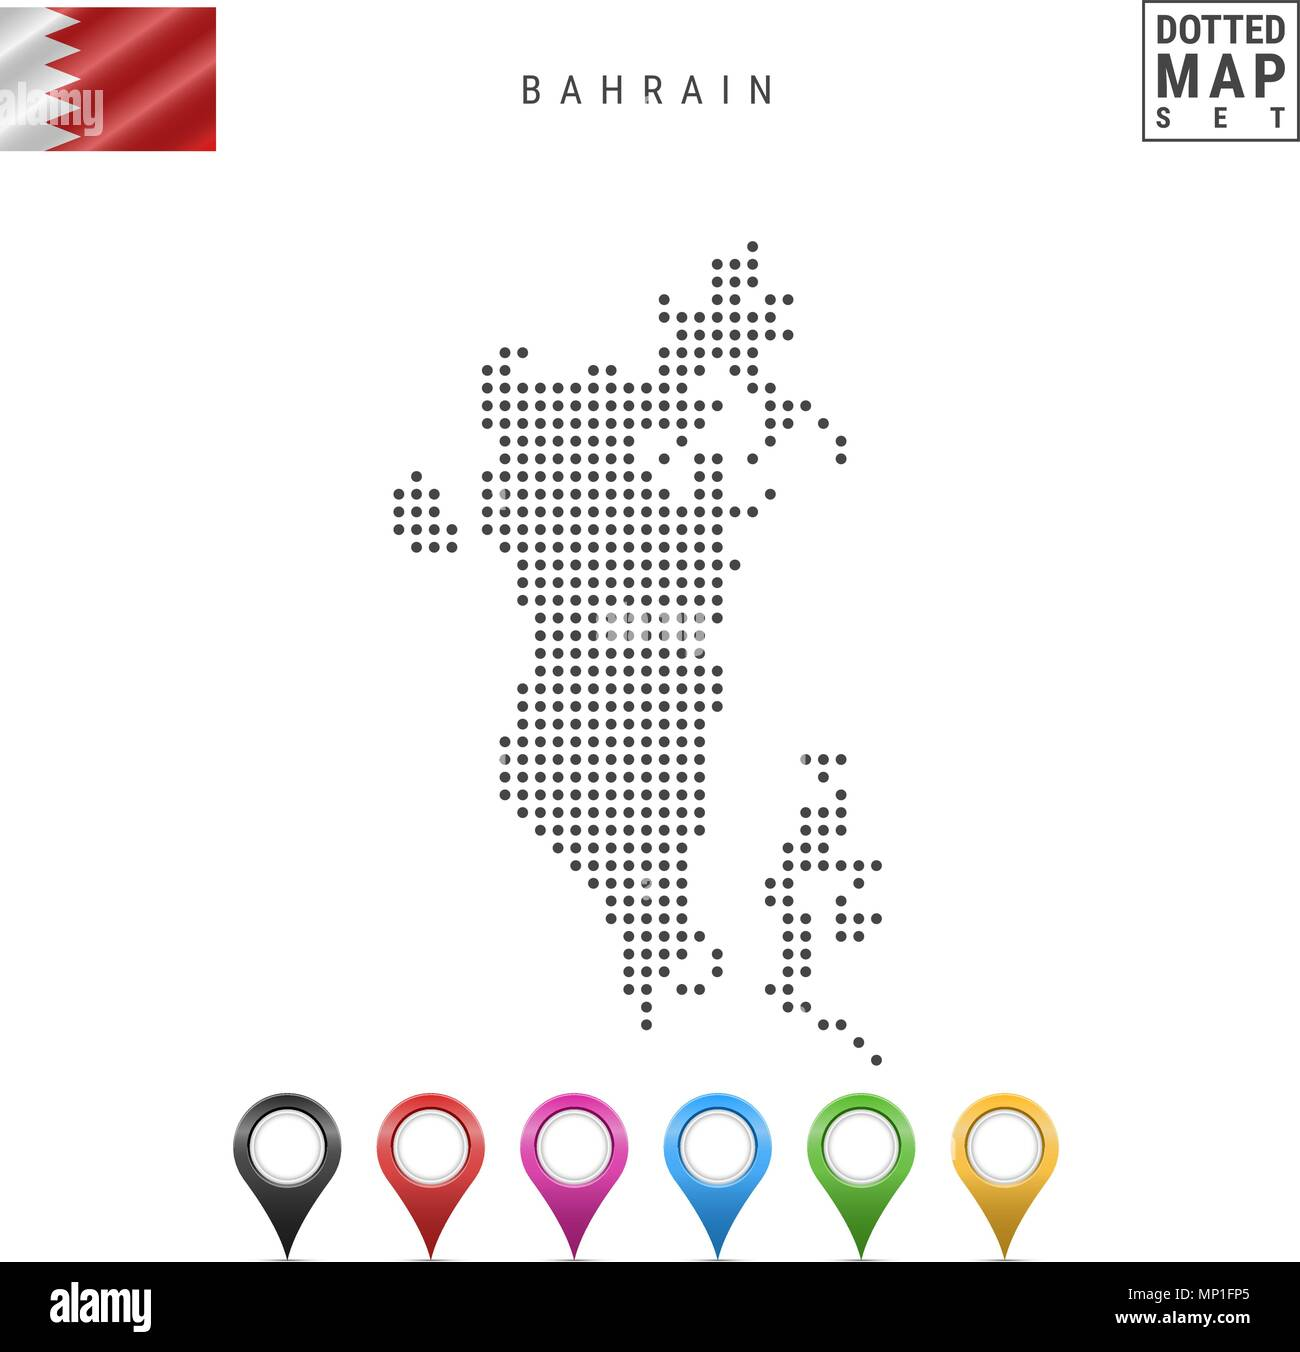 Vector Dotted Map of Bahrain. Simple Silhouette of Bahrain. National Flag of Bahrain. Set of Multicolored Map Markers - Stock Vector